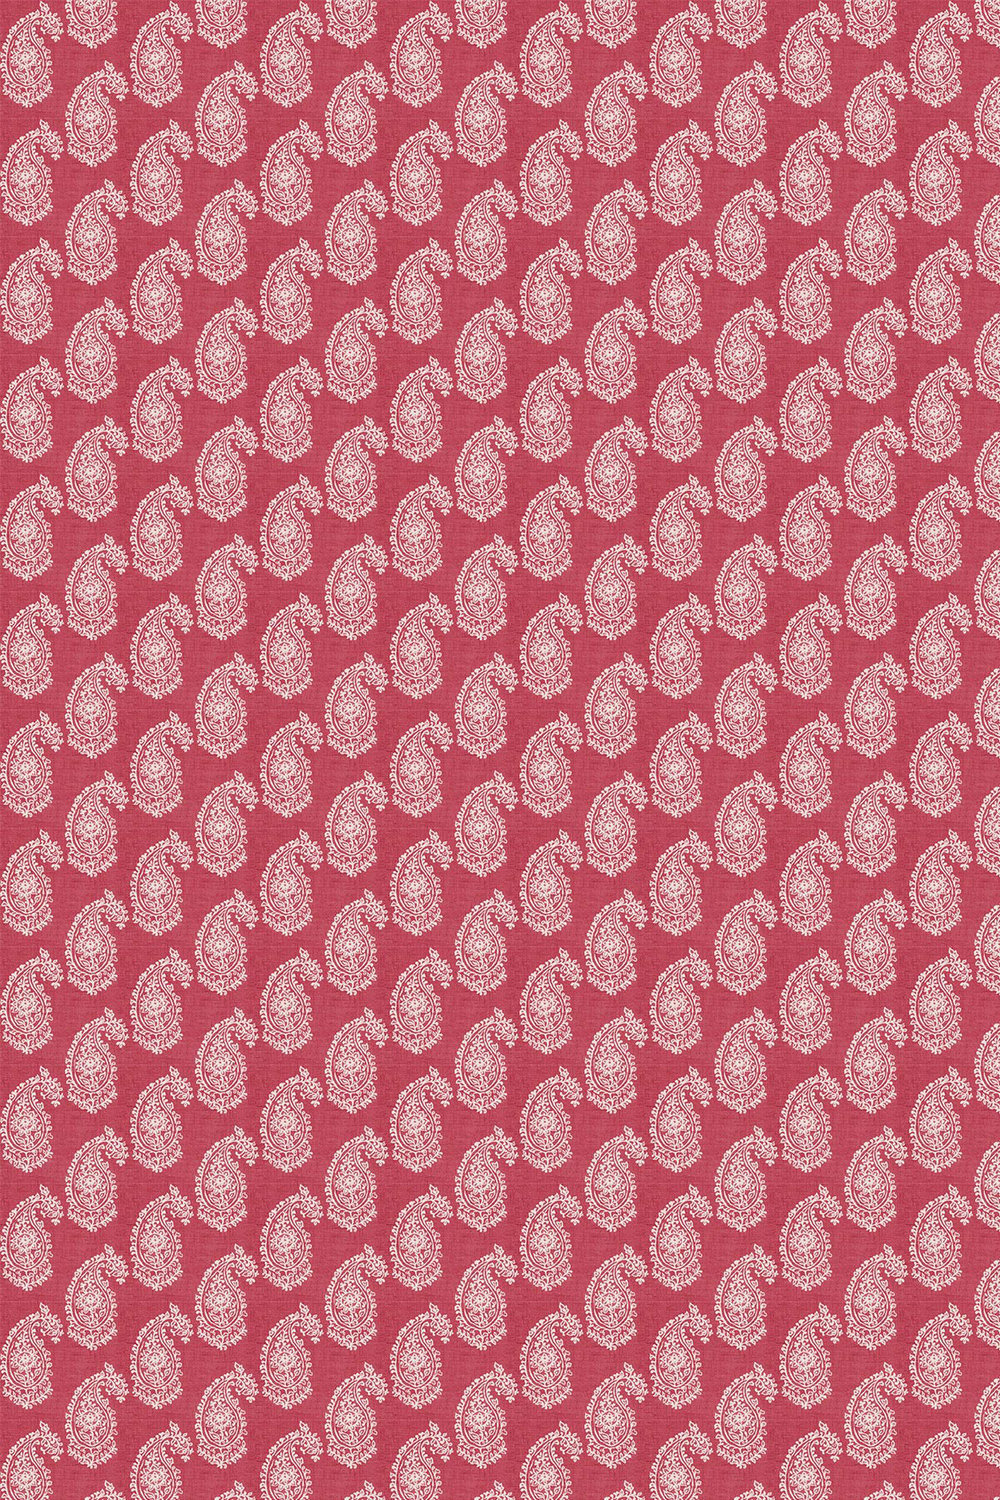 Studio G Harriet Raspberry Fabric - Product code: F0623/04